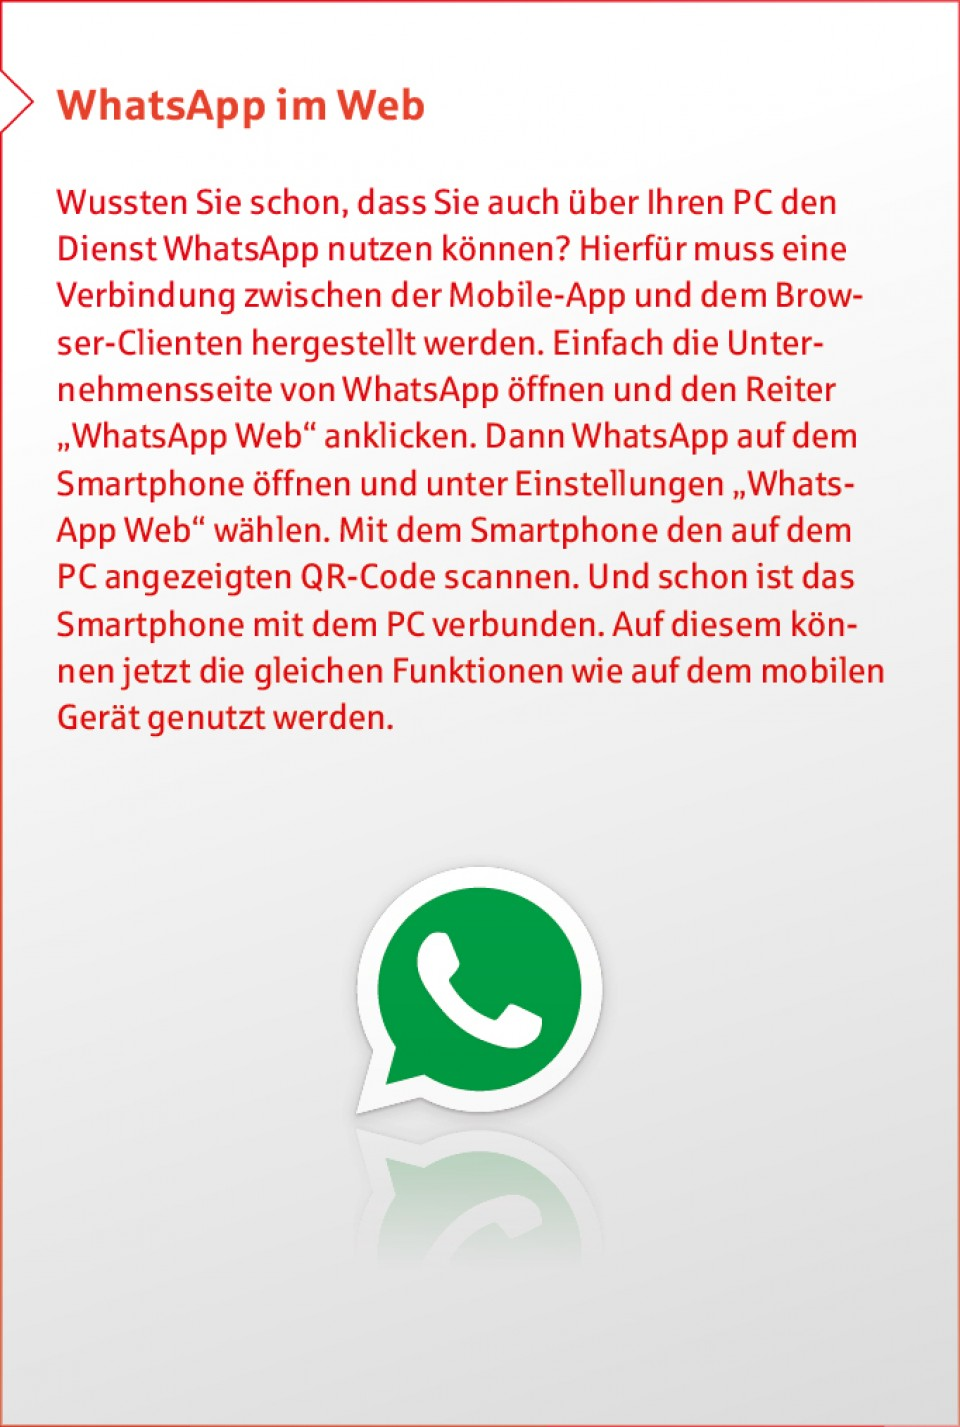 WhatsApp-im-Web